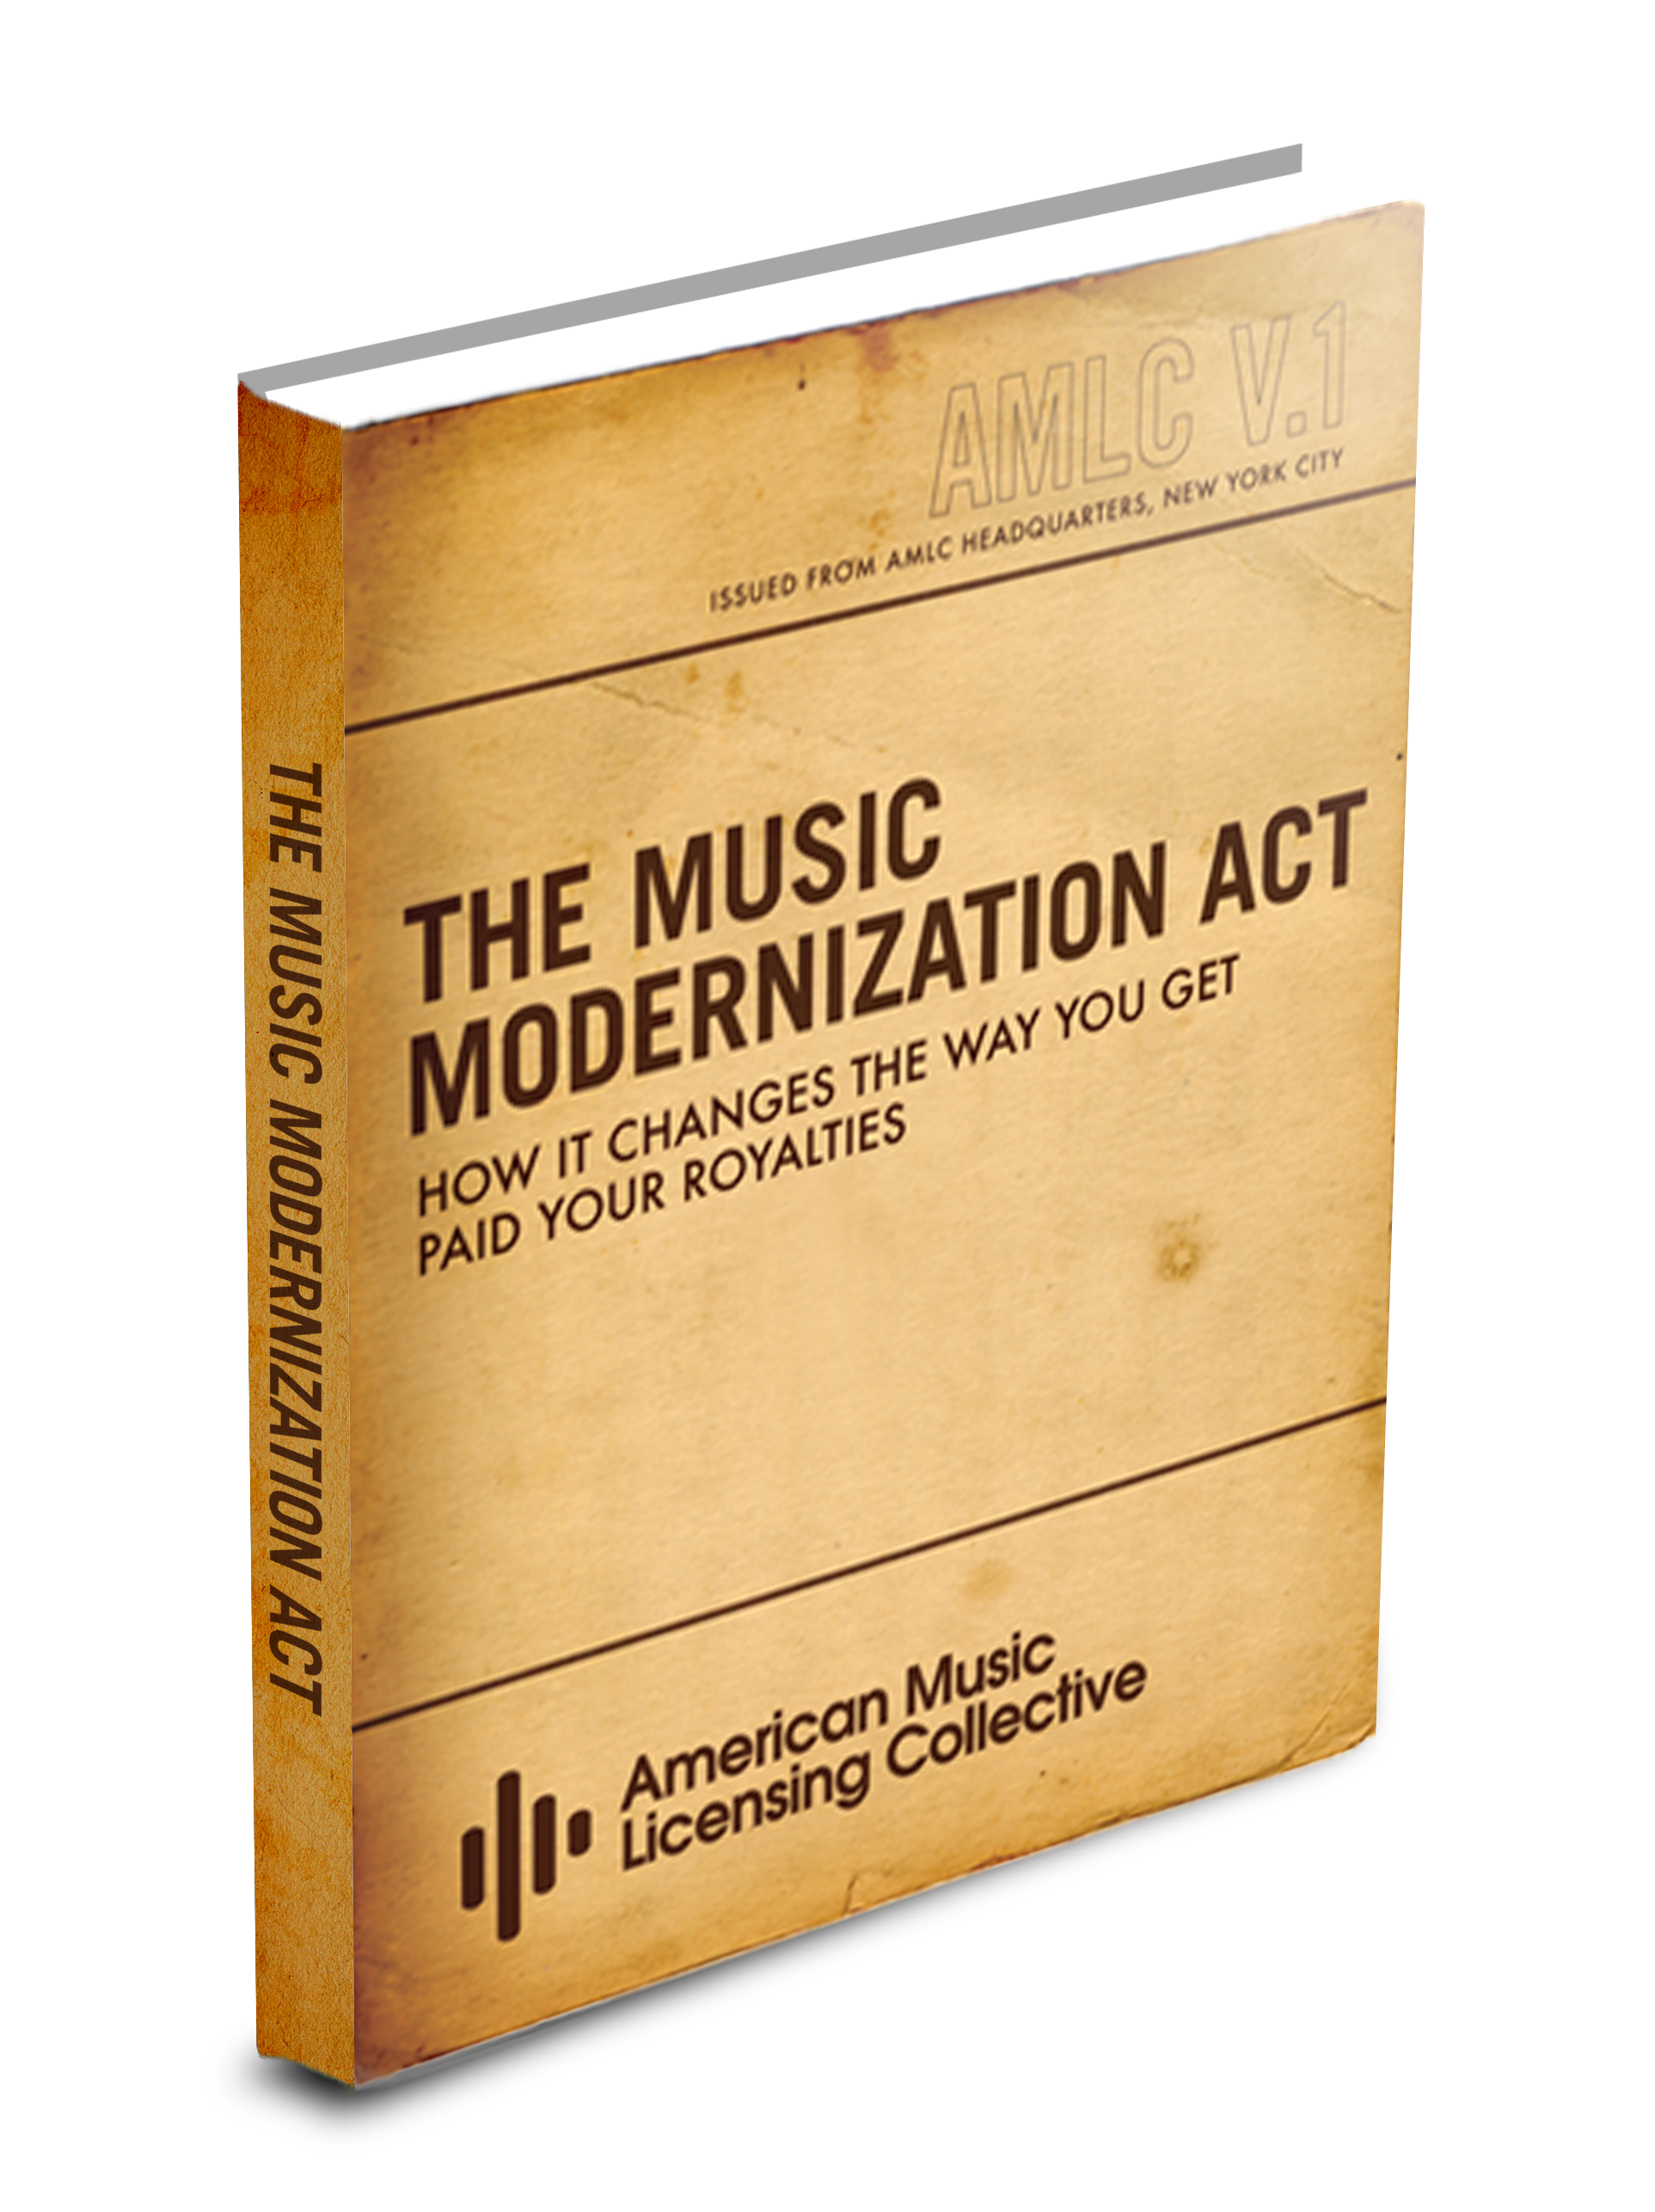 FREE EBOOK DOWNLOAD - Here is a free E-Book (PDF format) that tells you everything you need to know about the Music Modernization Act.